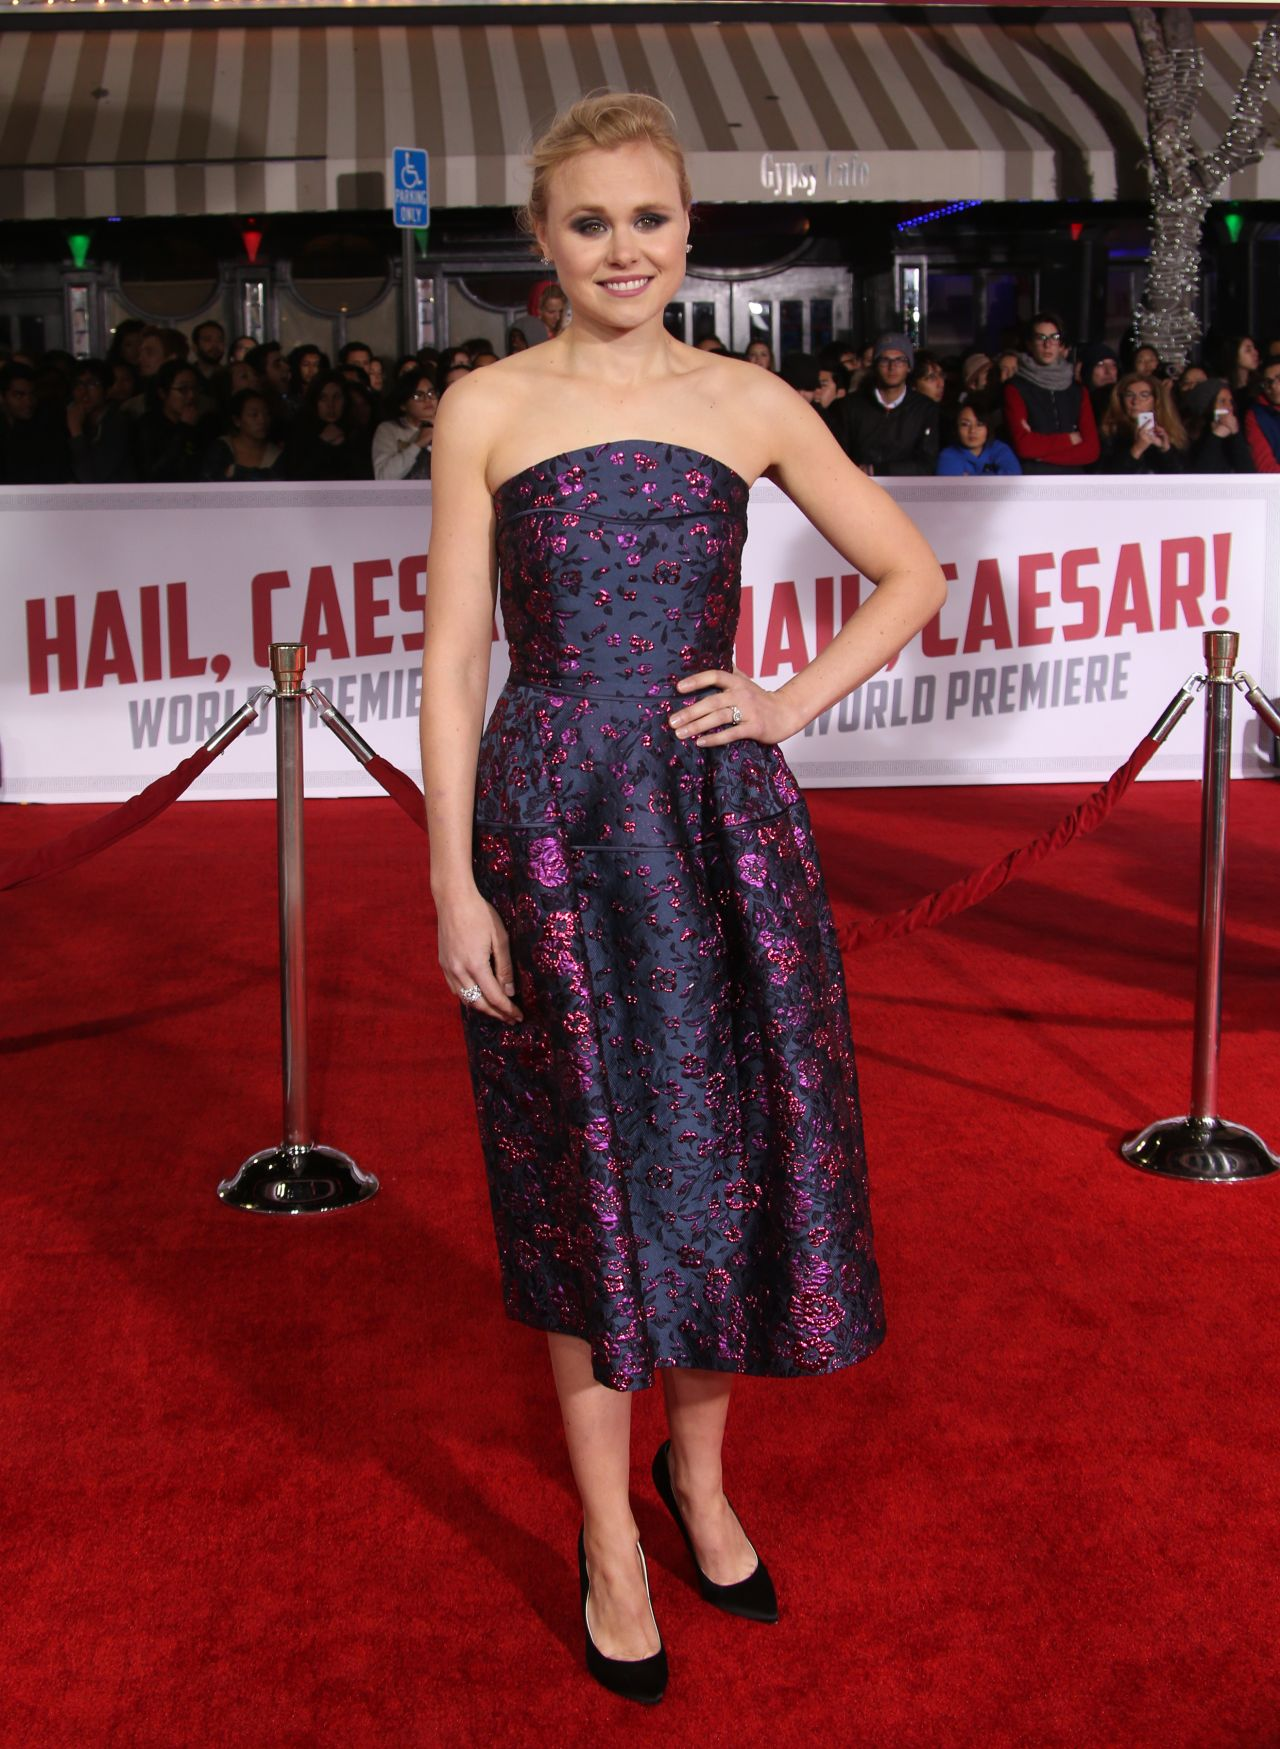 alison-pill-hail-caesar-premiere-in-hollywood-1-1